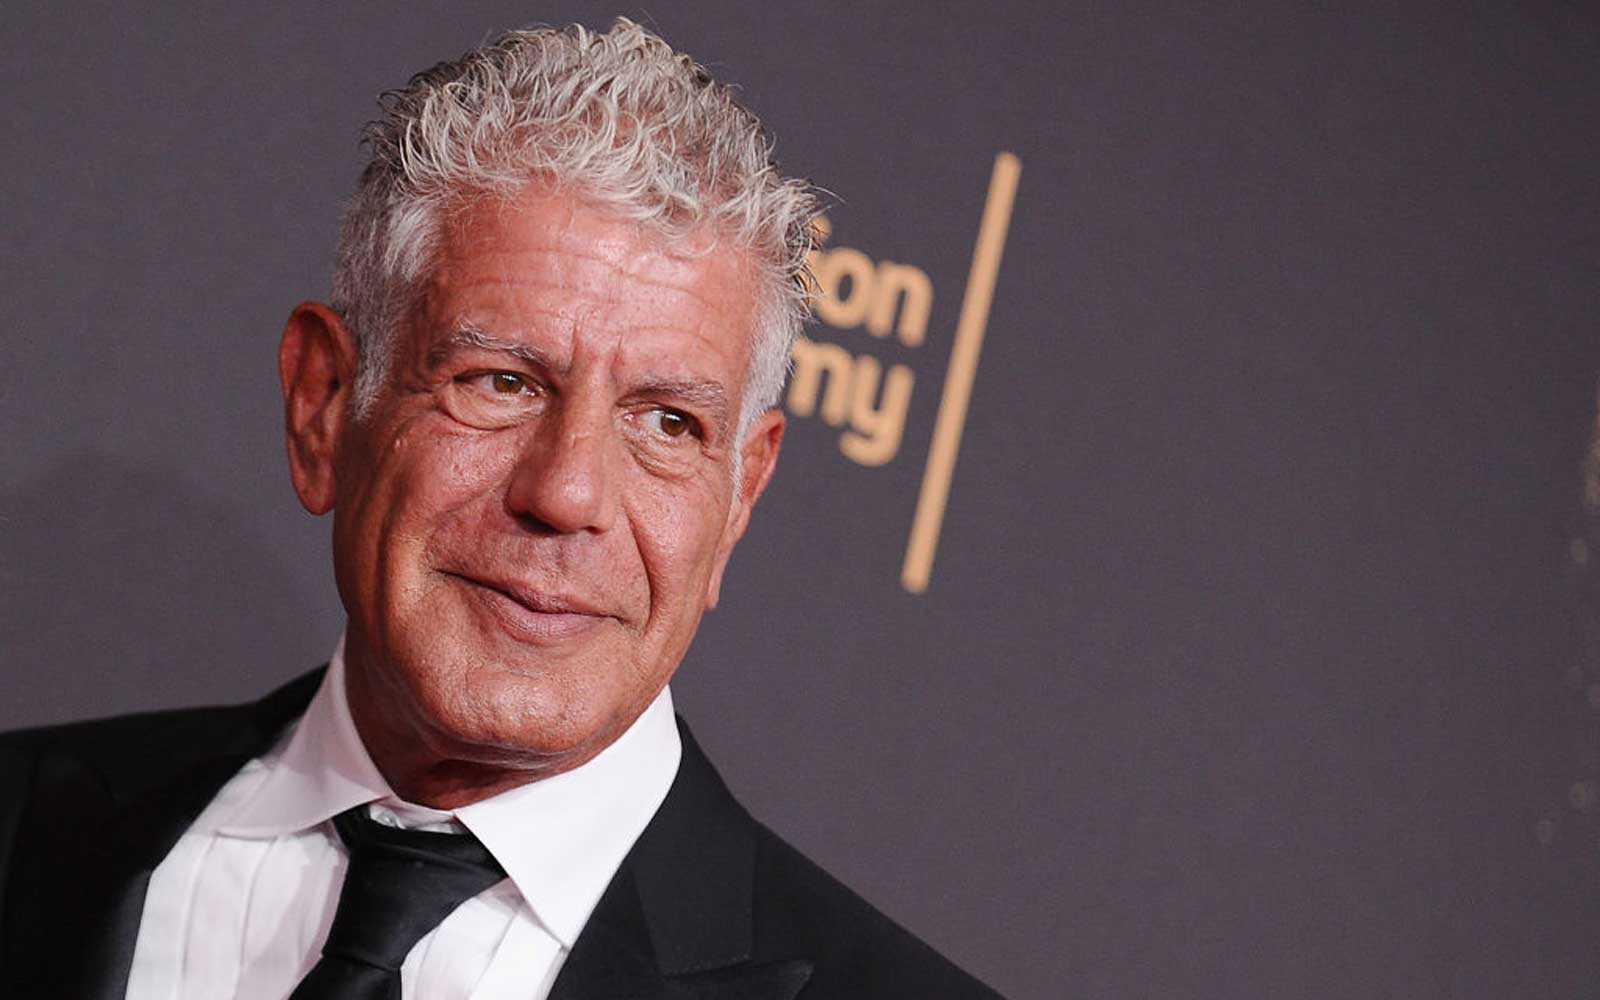 Anthony Bourdain's 'Parts Unknown' Isn't Leaving Netflix Anytime Soon